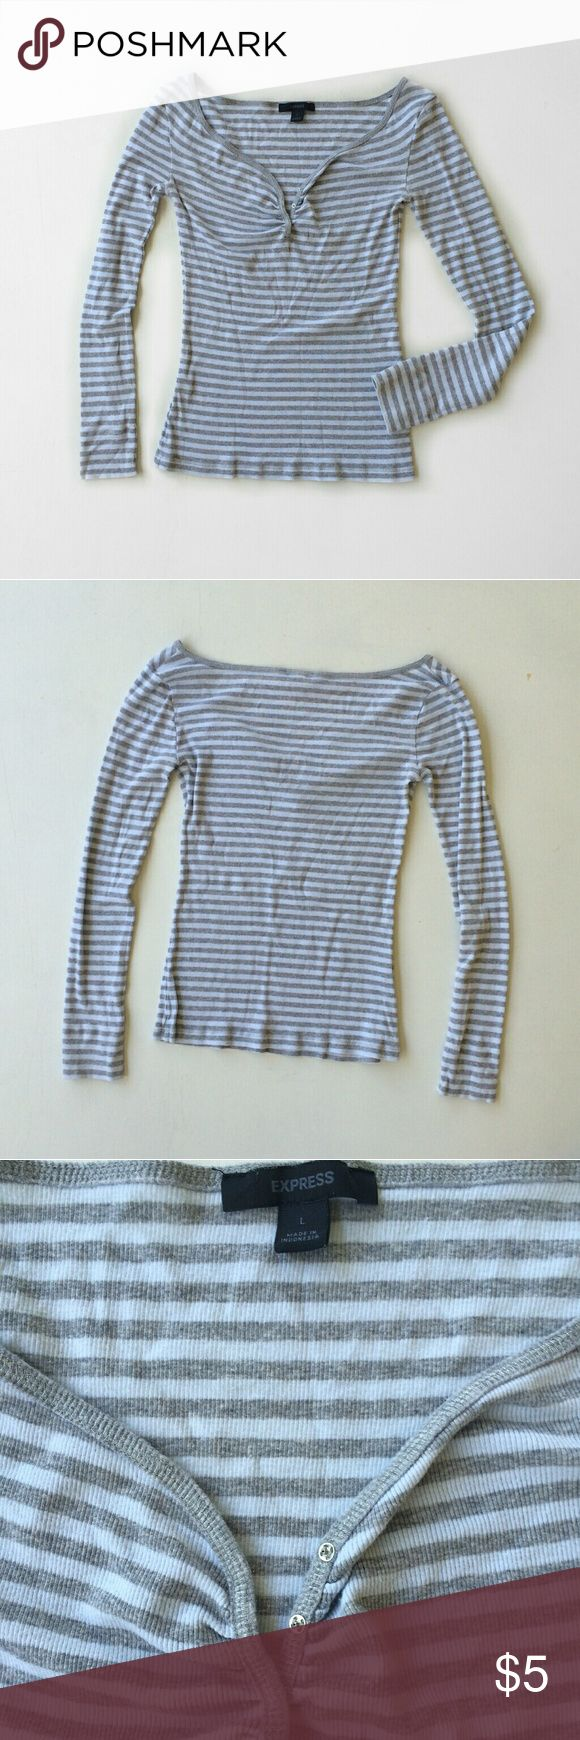 Express Striped Henley Tee Some general wear but in overall good condition. Very stretchy. Size large   100% cotton Laying flat: Express Tops Tees - Long Sleeve